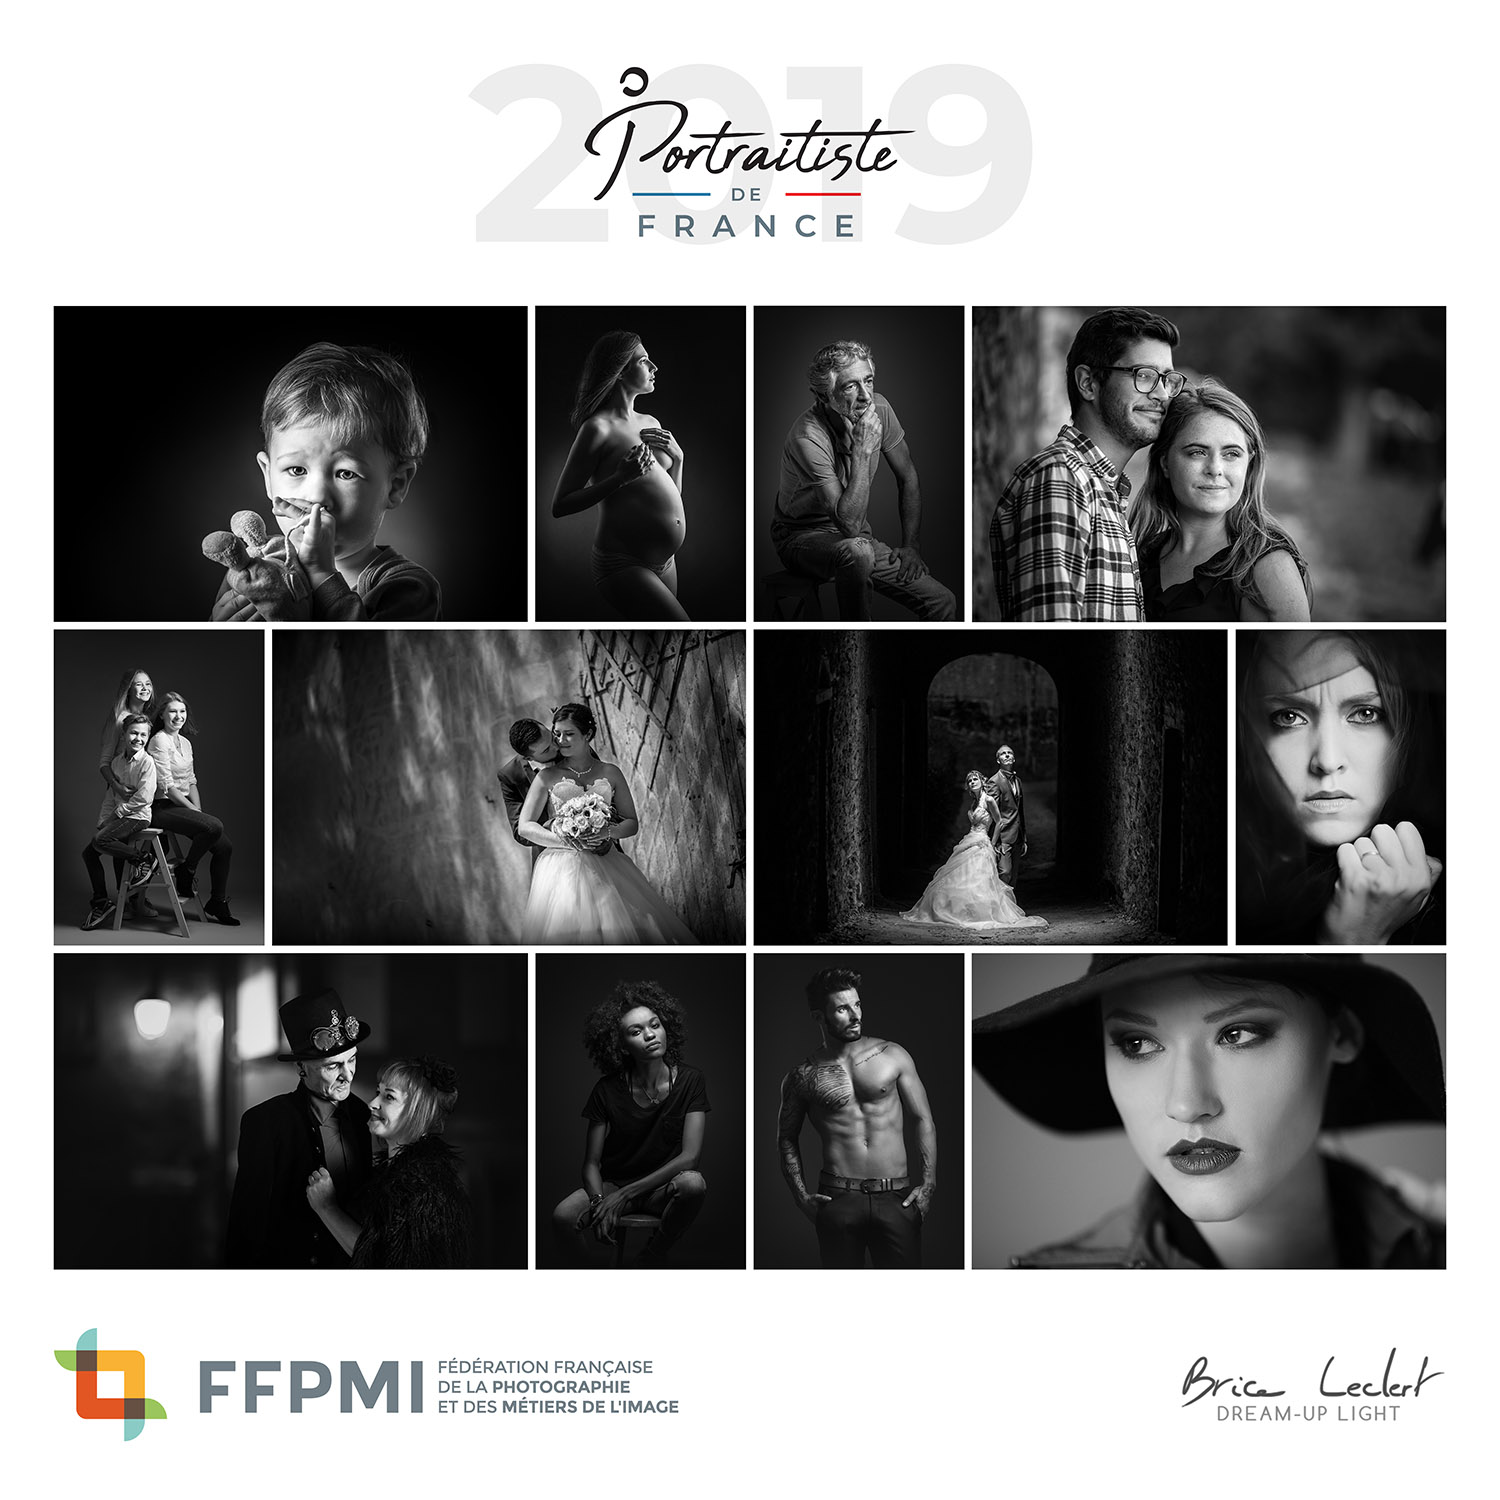 pdf portraitiste de france 2019 EP european photographer brice leclert